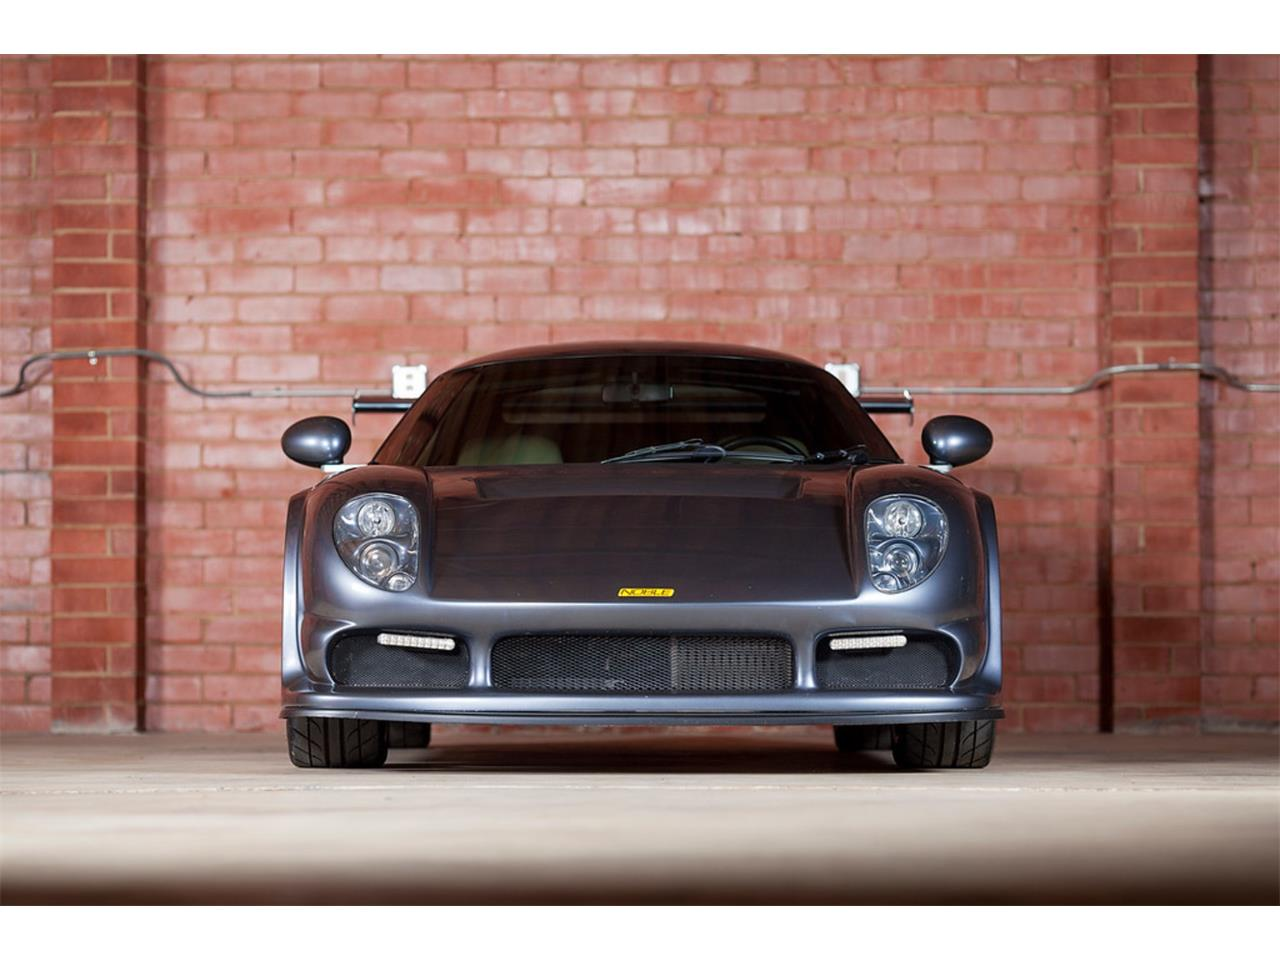 Large Picture of '05 M12 GTO-3R located in Charlotte North Carolina Auction Vehicle - Q5KN